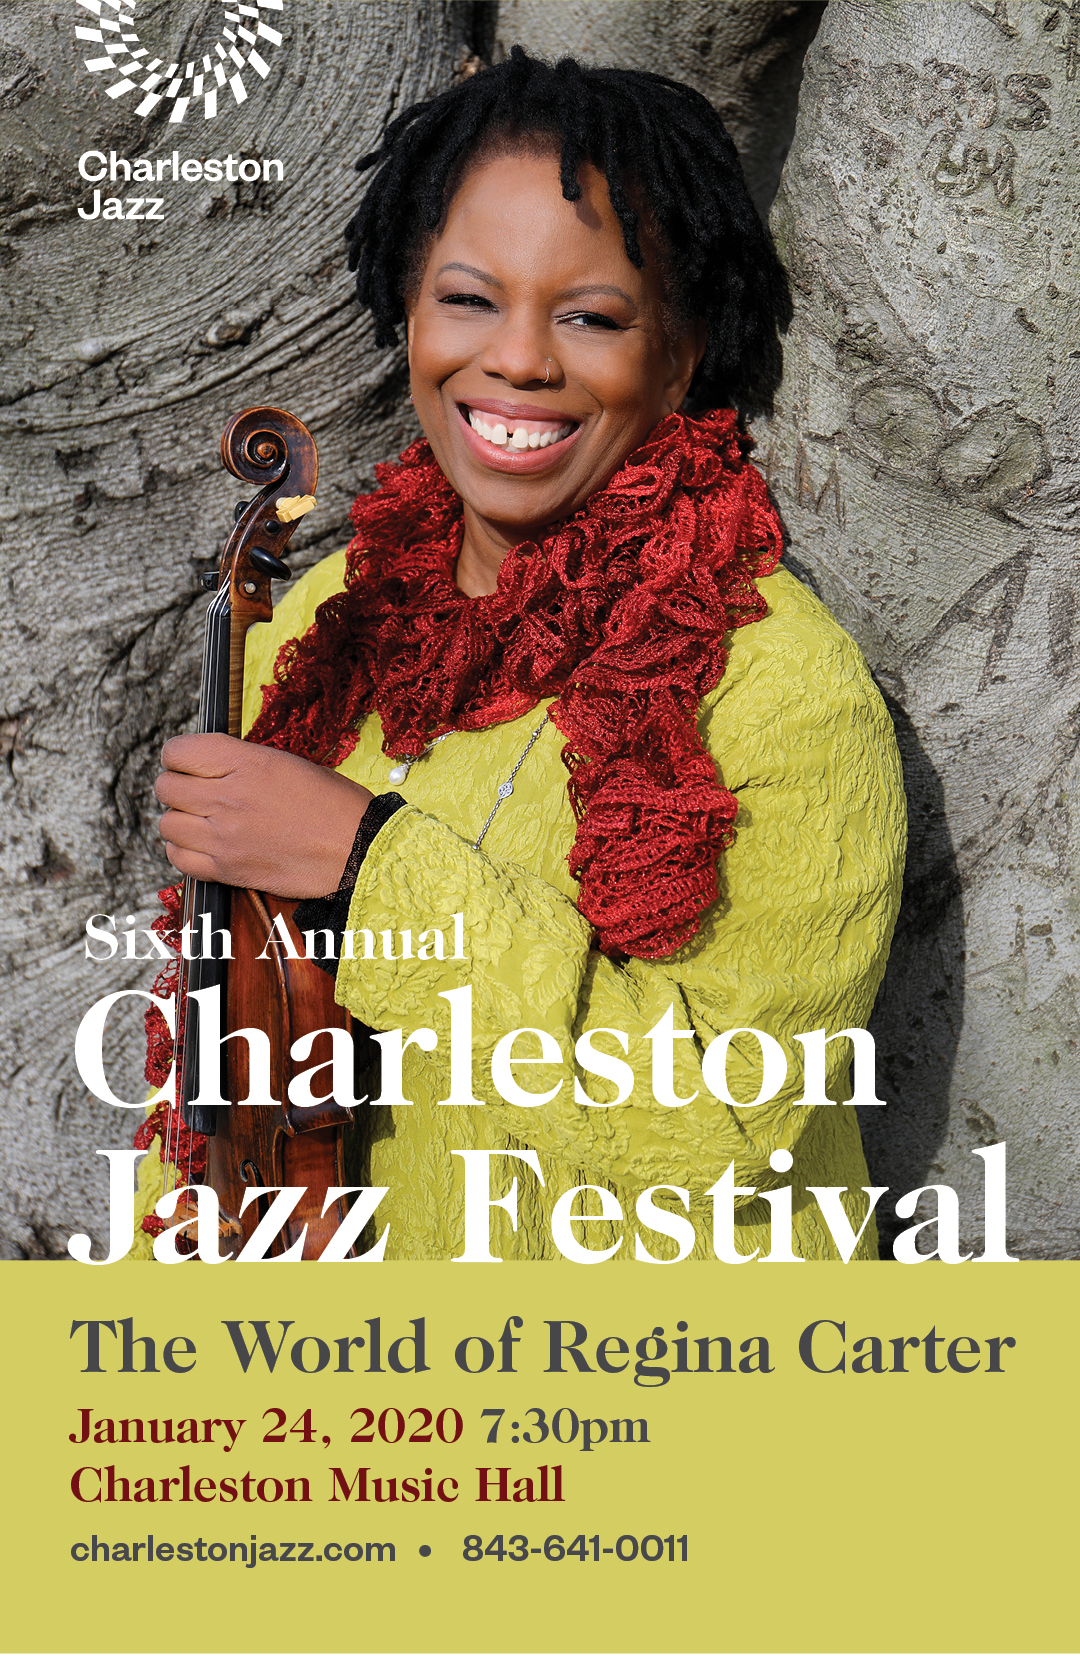 Home - Charleston Music Hall - OFFICIAL WEBSITE